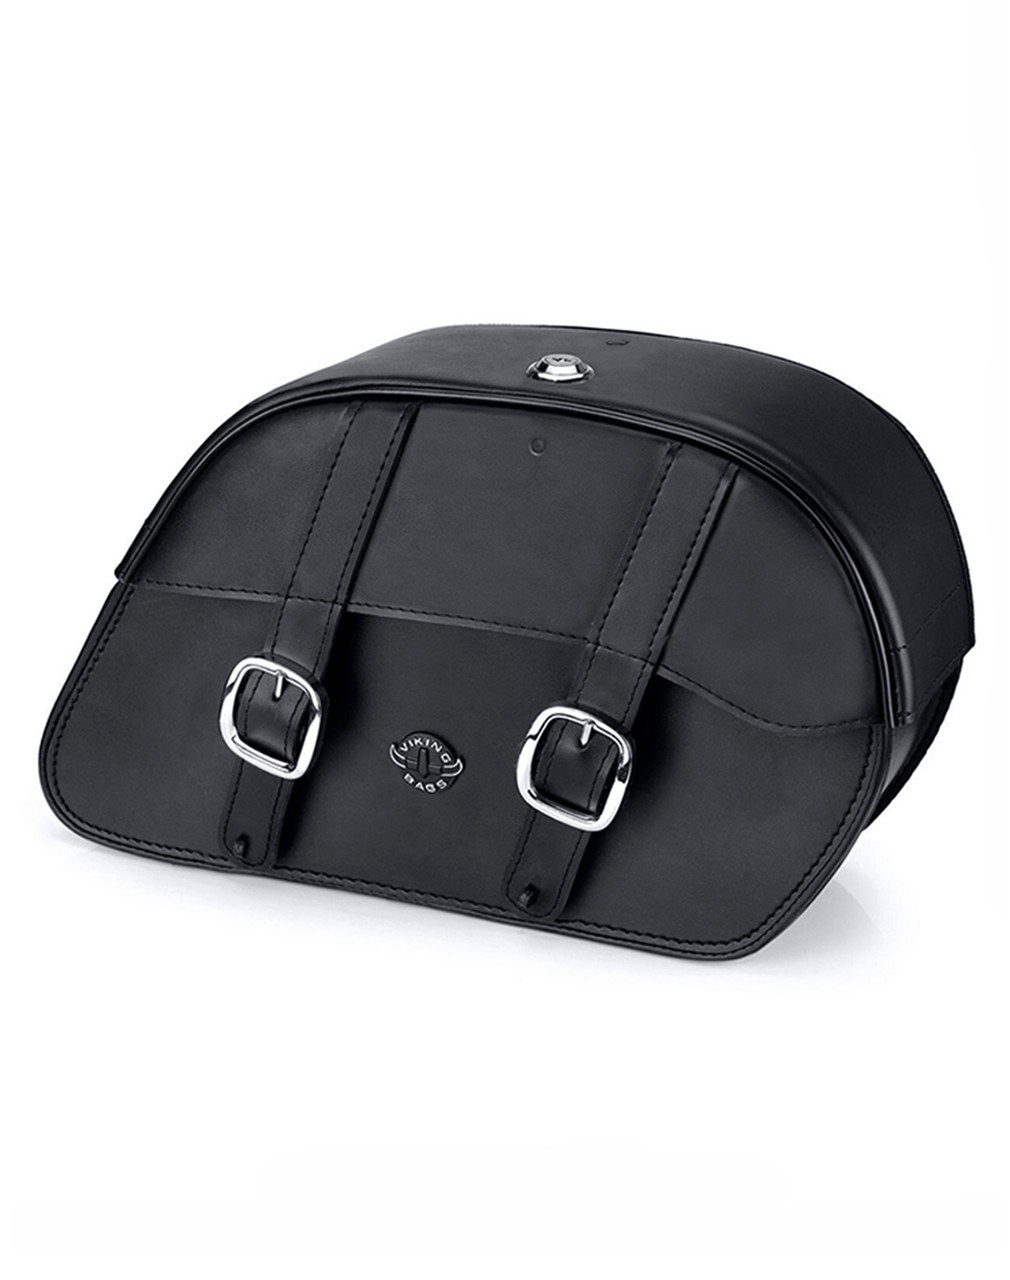 VikingBags Skarner Large Double Strap Victory Octane Leather Motorcycle Saddlebags Main View